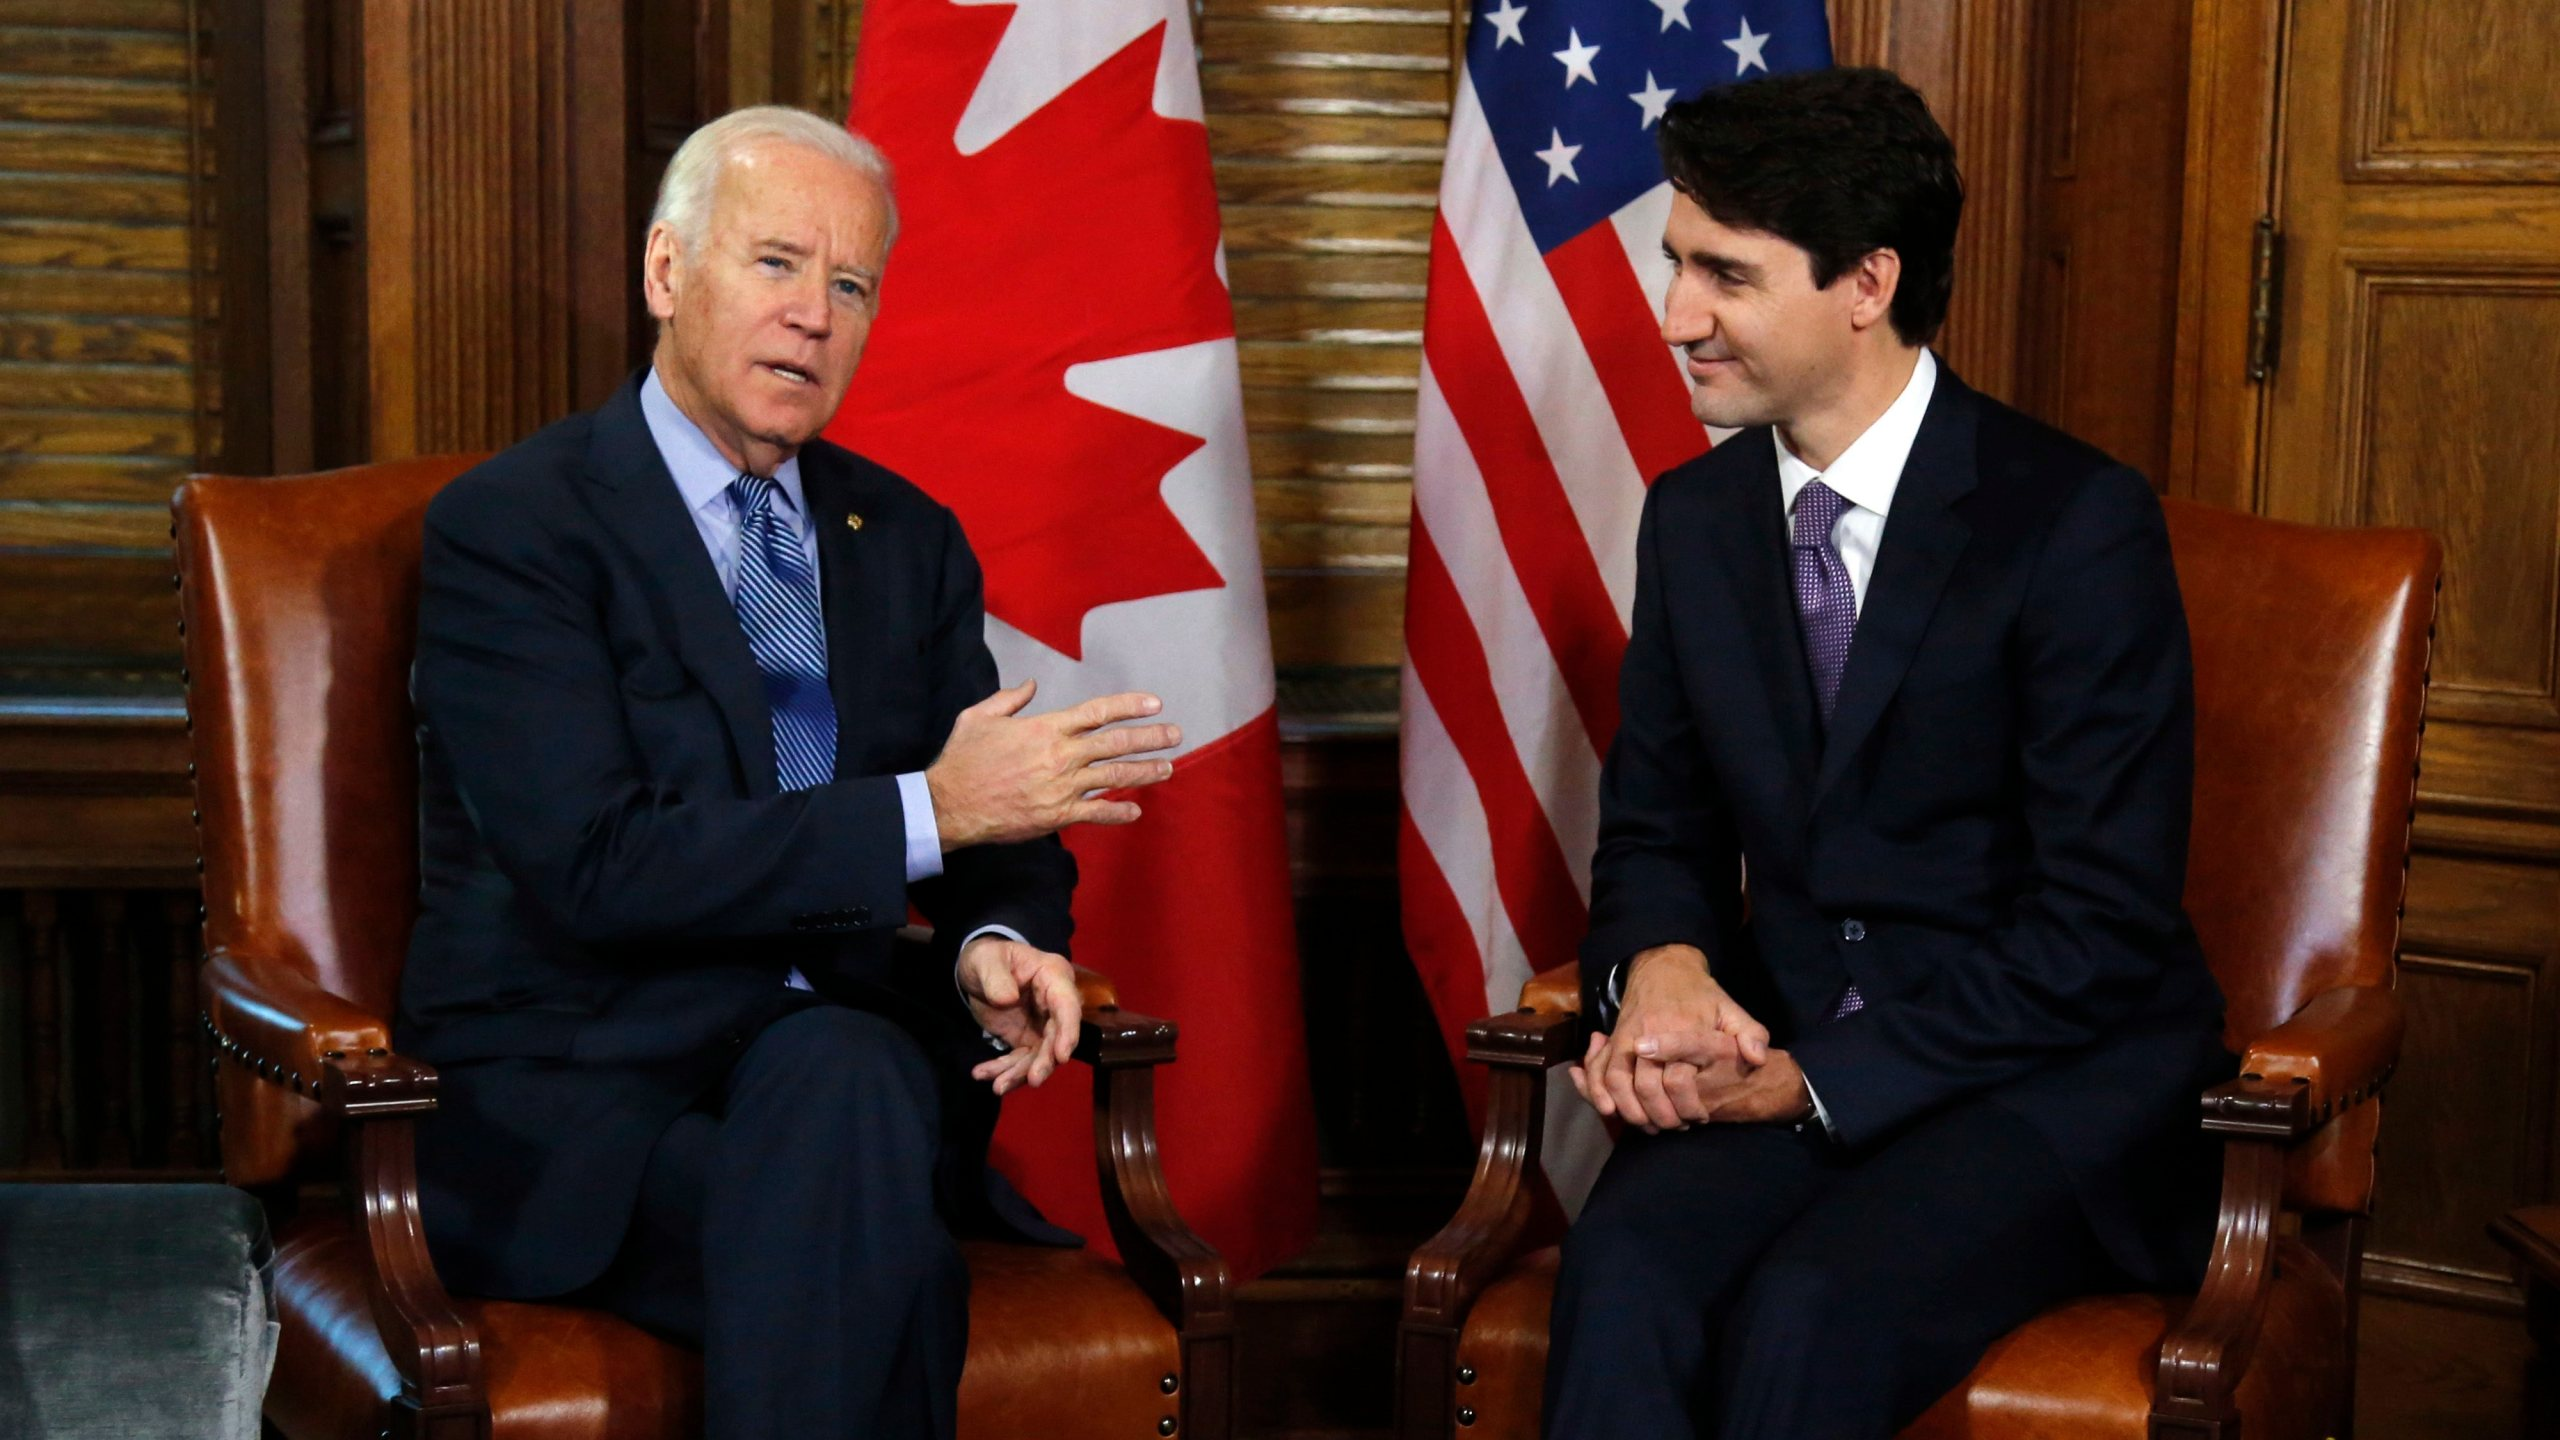 FILE - In this Dec. 9, 2016 file photo, Canadian Prime Minister Justin Trudeau meets with then U.S. Vice President Joe Biden on Parliament Hill in Ottawa. Biden will still host Canadian Prime Minister Justin Trudeau on Tuesday for the first bilateral meeting but will do it virtually. (Patrick Doyle/The Canadian Press via AP)